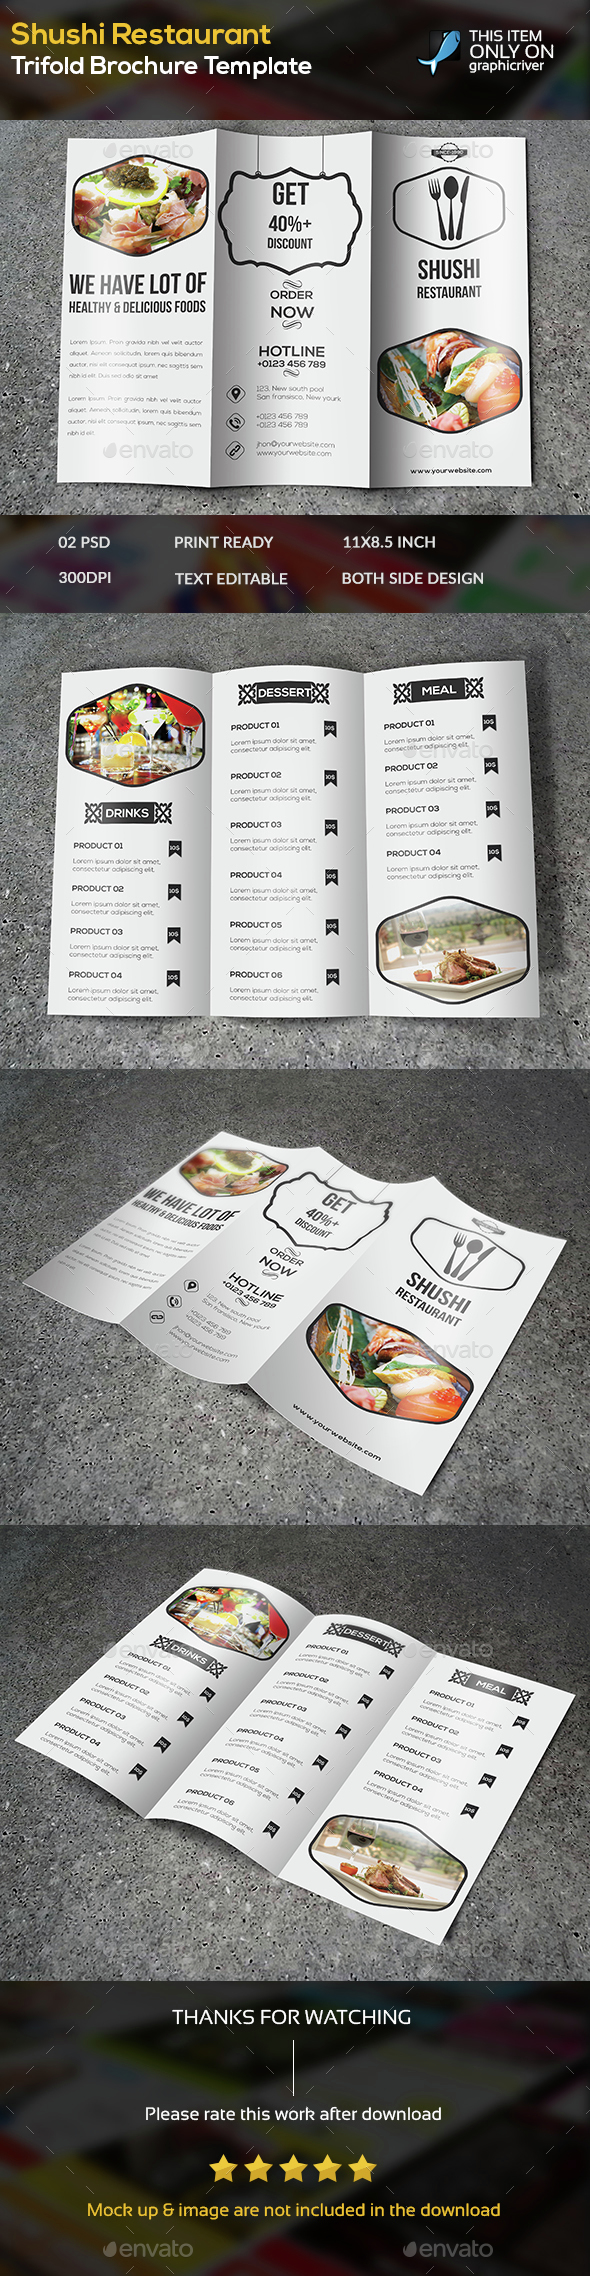 Shushi Restaurant Trifold Brochure Template - Brochures Print Templates